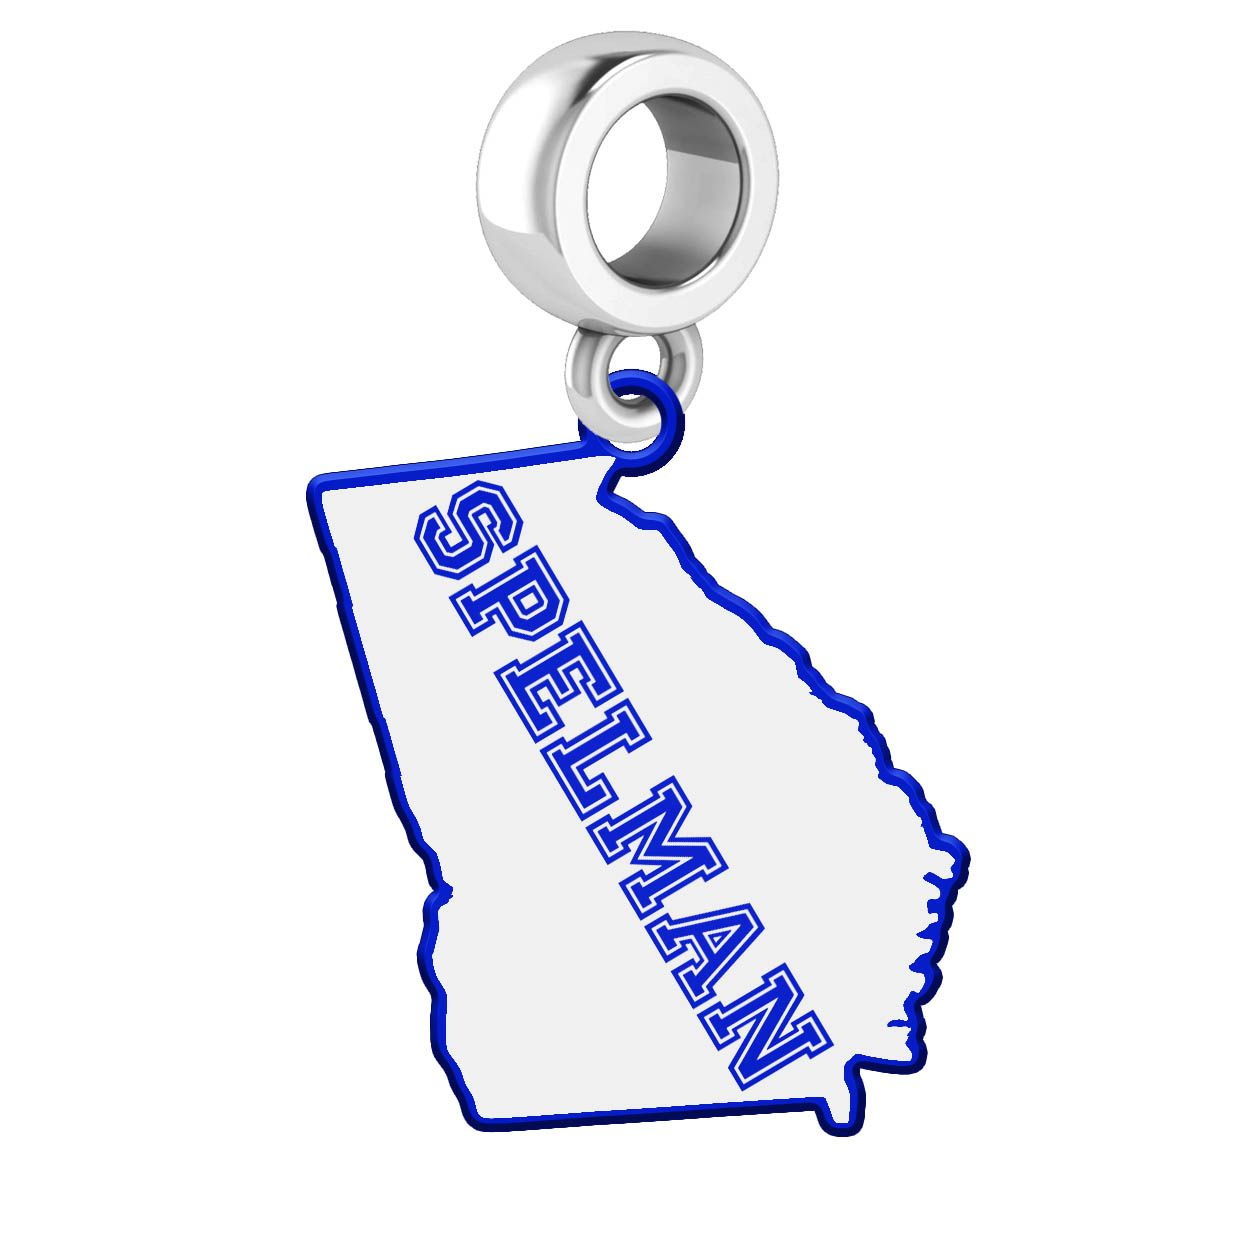 Spelman Logo - Spelman College Jaguars Dangle Charm With the State Cutout and ...